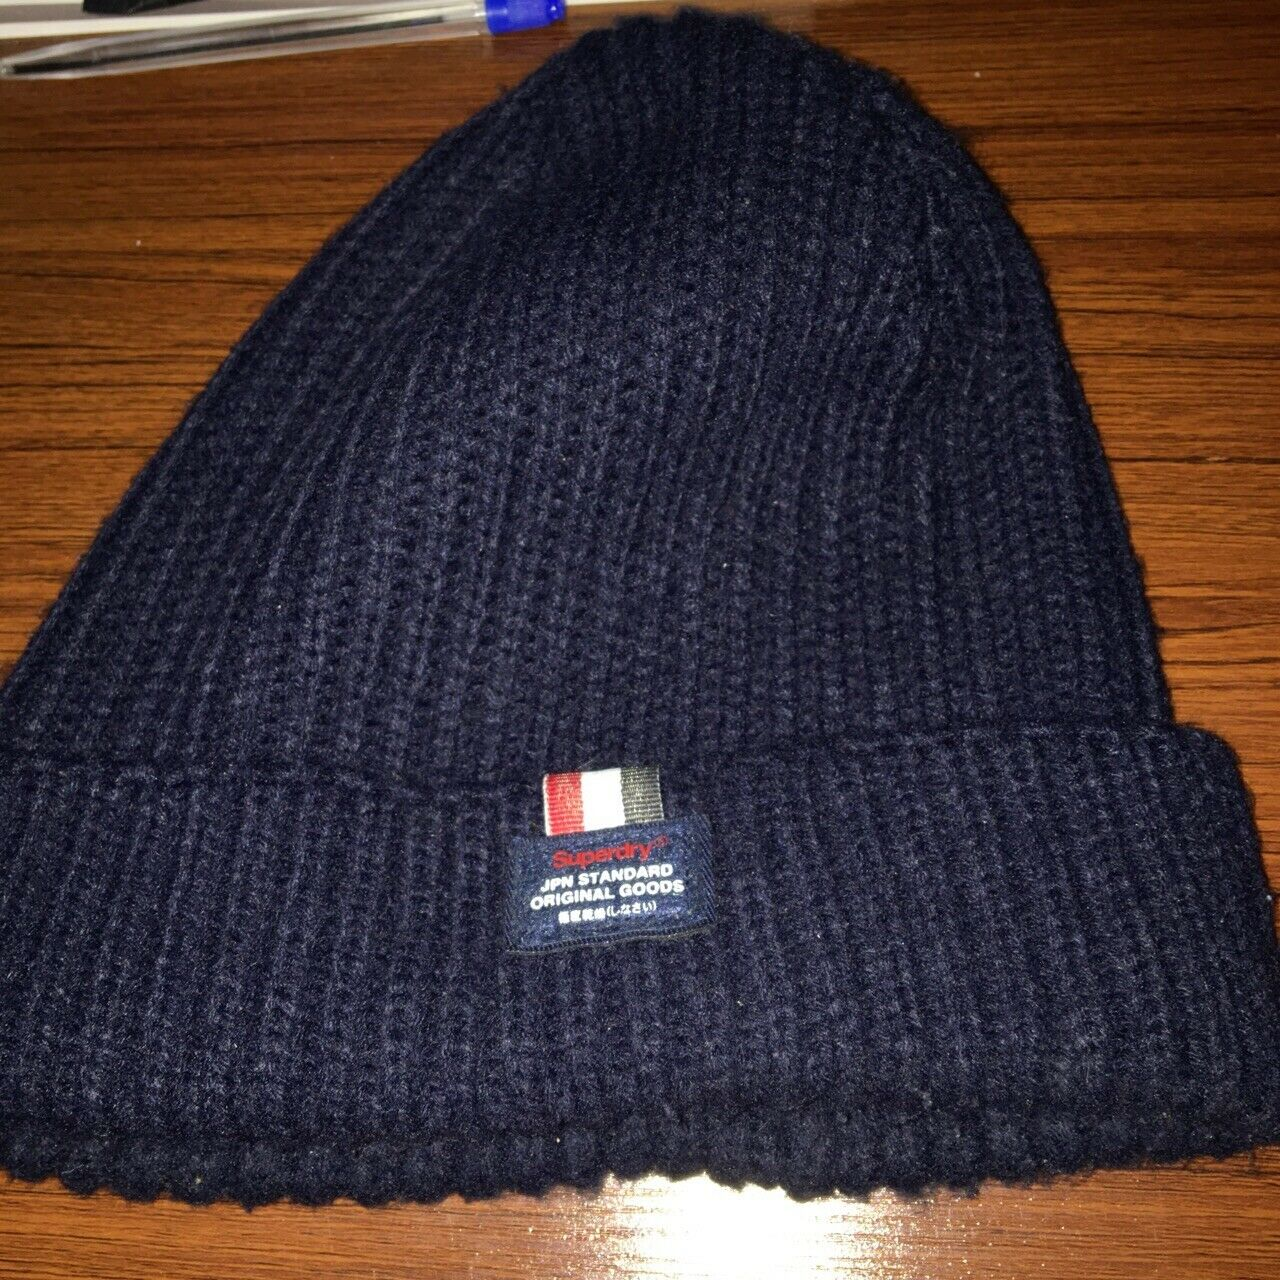 Superdry beanie and scarf